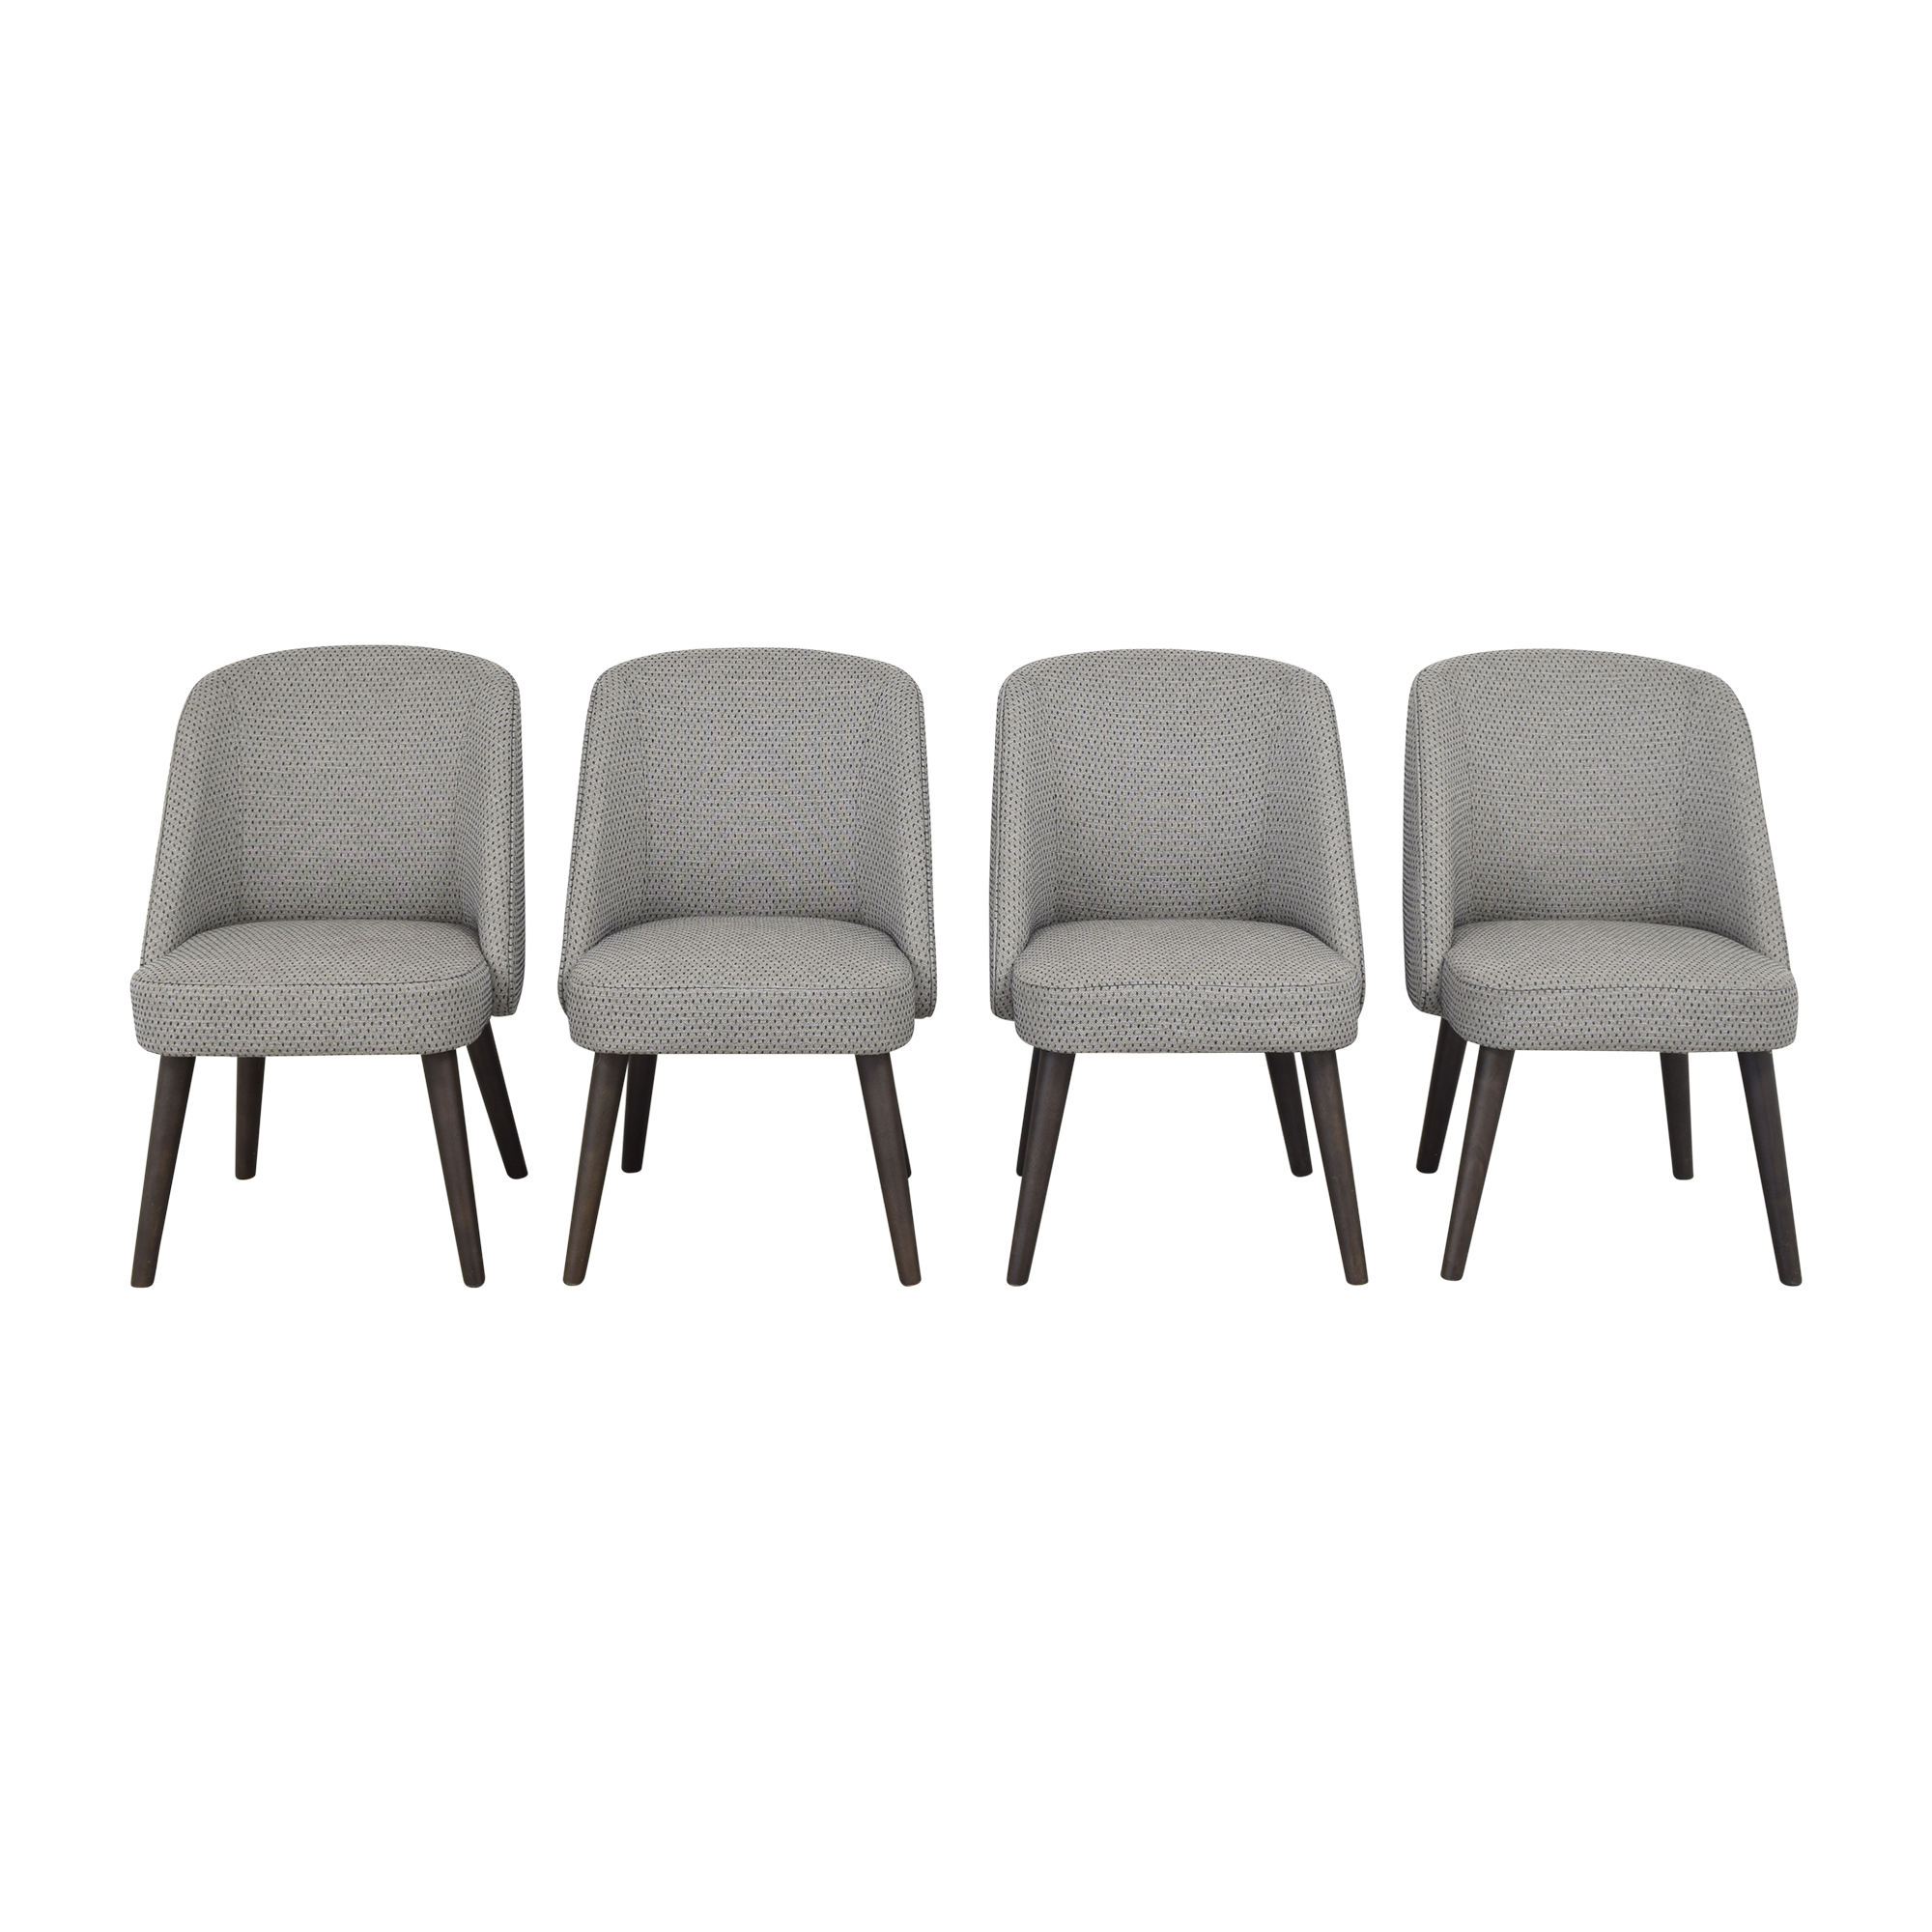 buy Room & Board Cora Dining Chairs Room & Board Dining Chairs